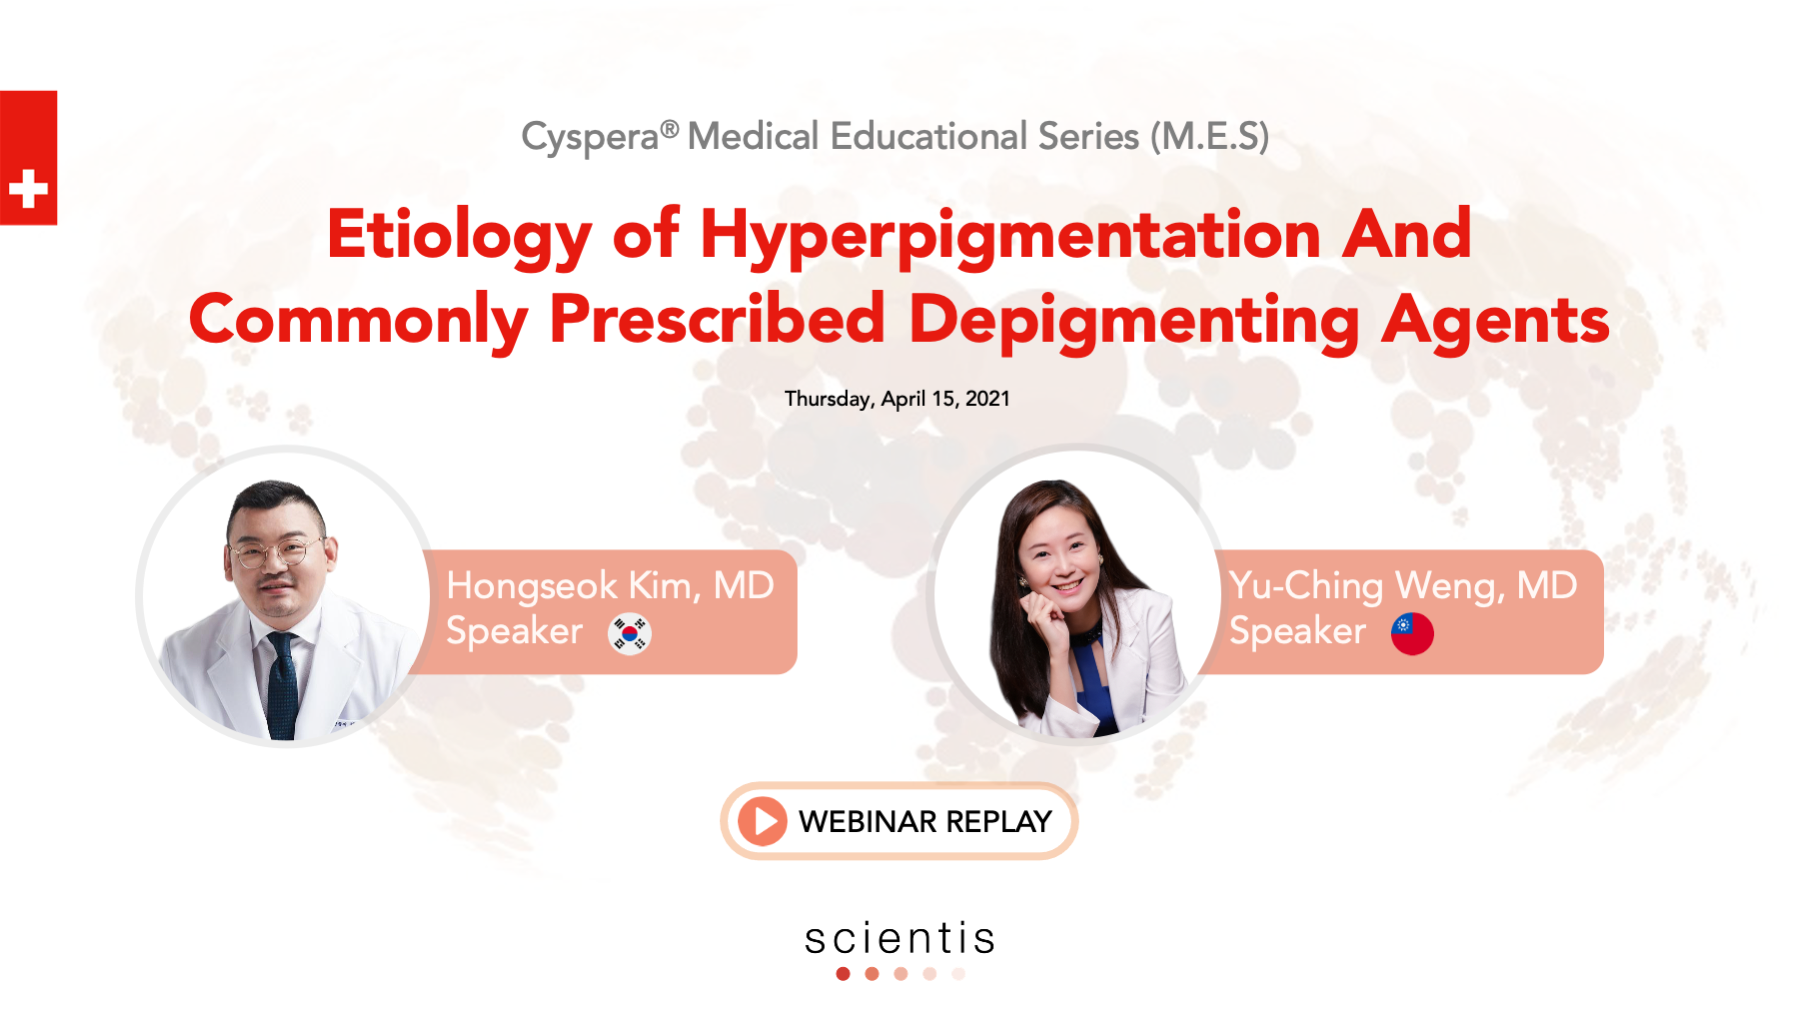 Etiology of Hyperpigmentation And Commonly Prescribed Depigmenting Agents